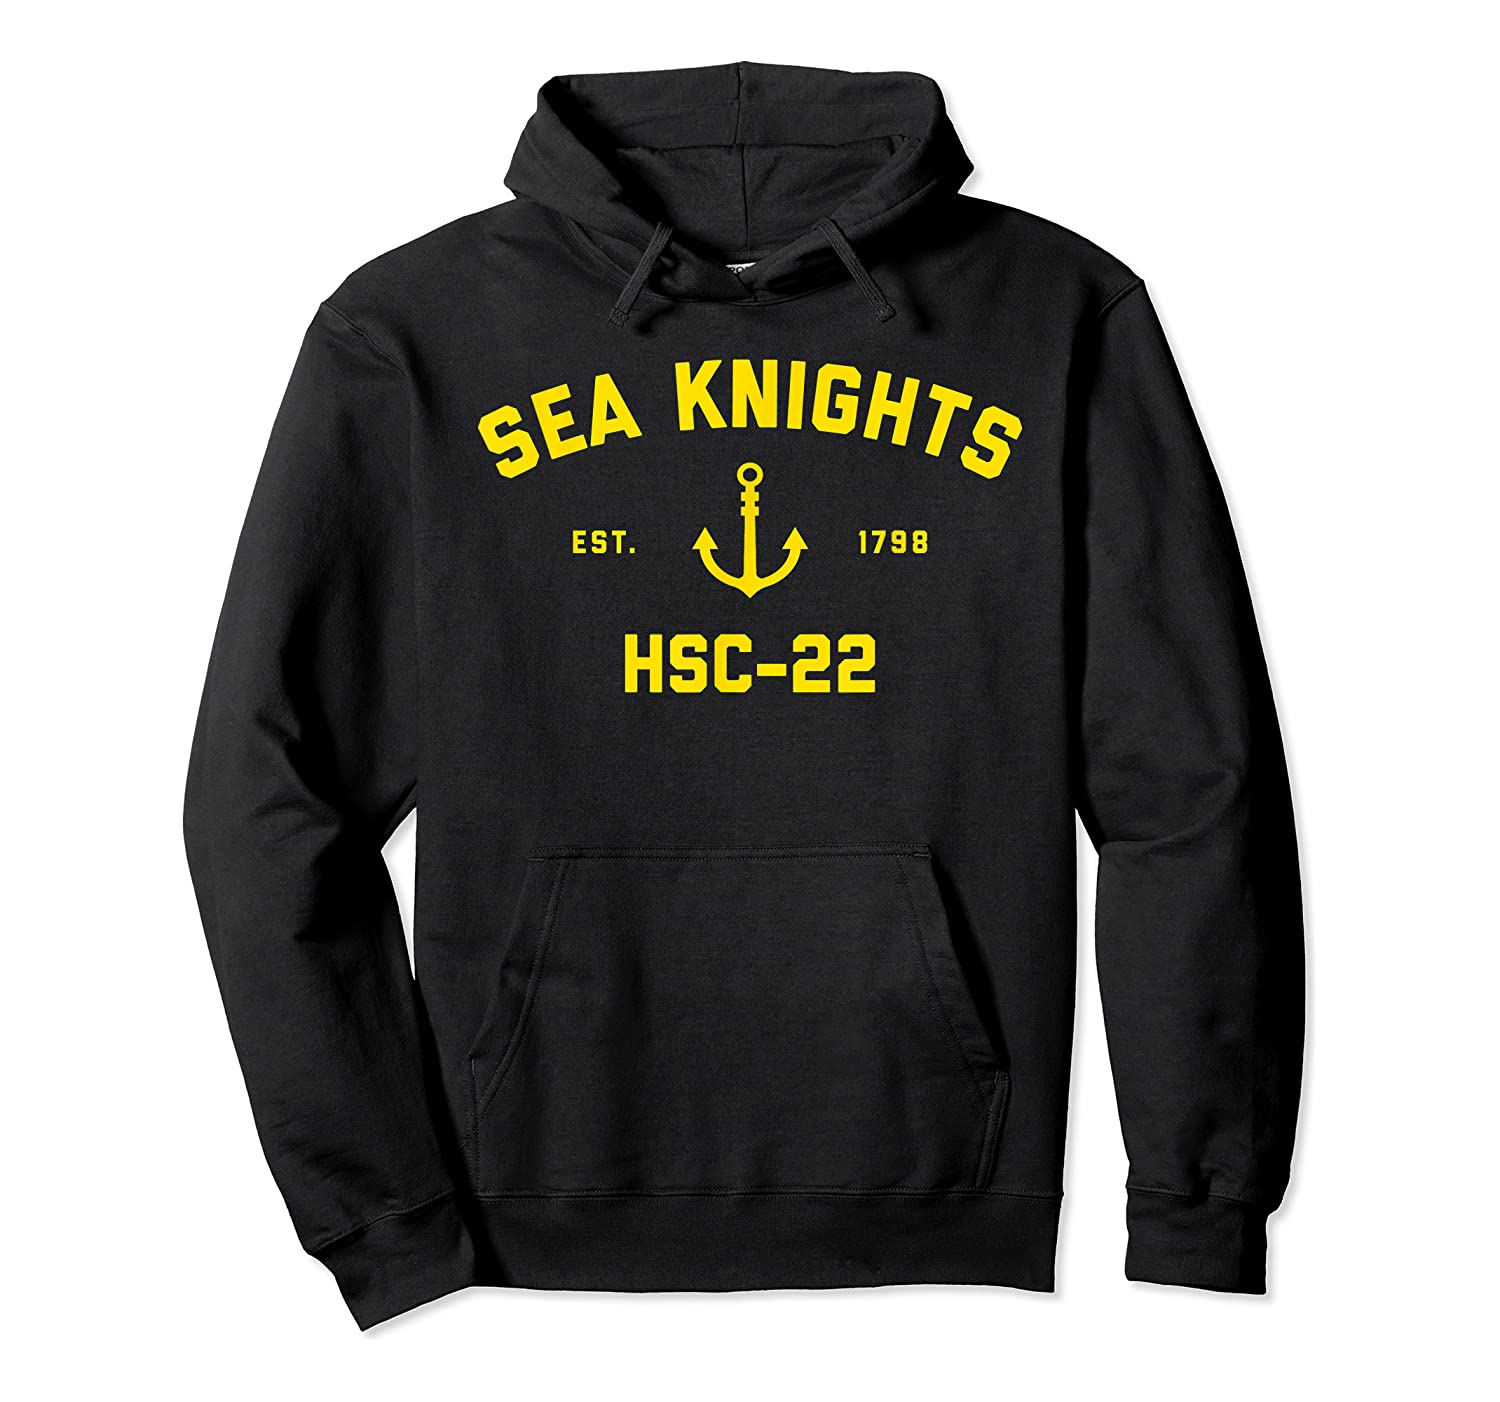 Hsc-22 Sea Knights T-shirt Unisex Pullover Hoodie